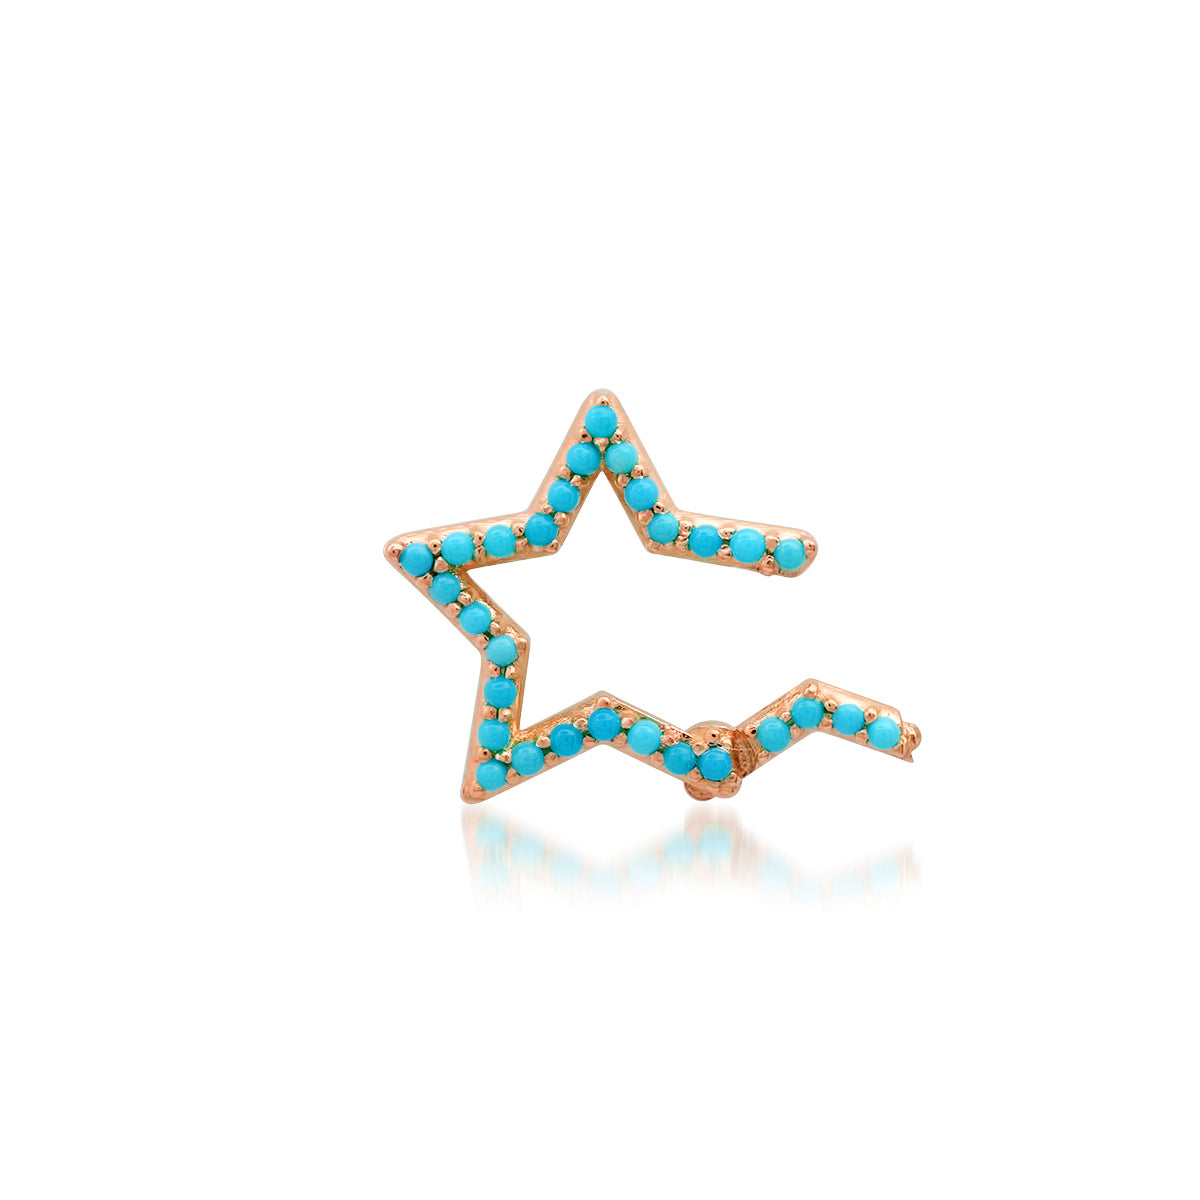 Double Sided Turquoise Star Charm Clip Holder Enhancer